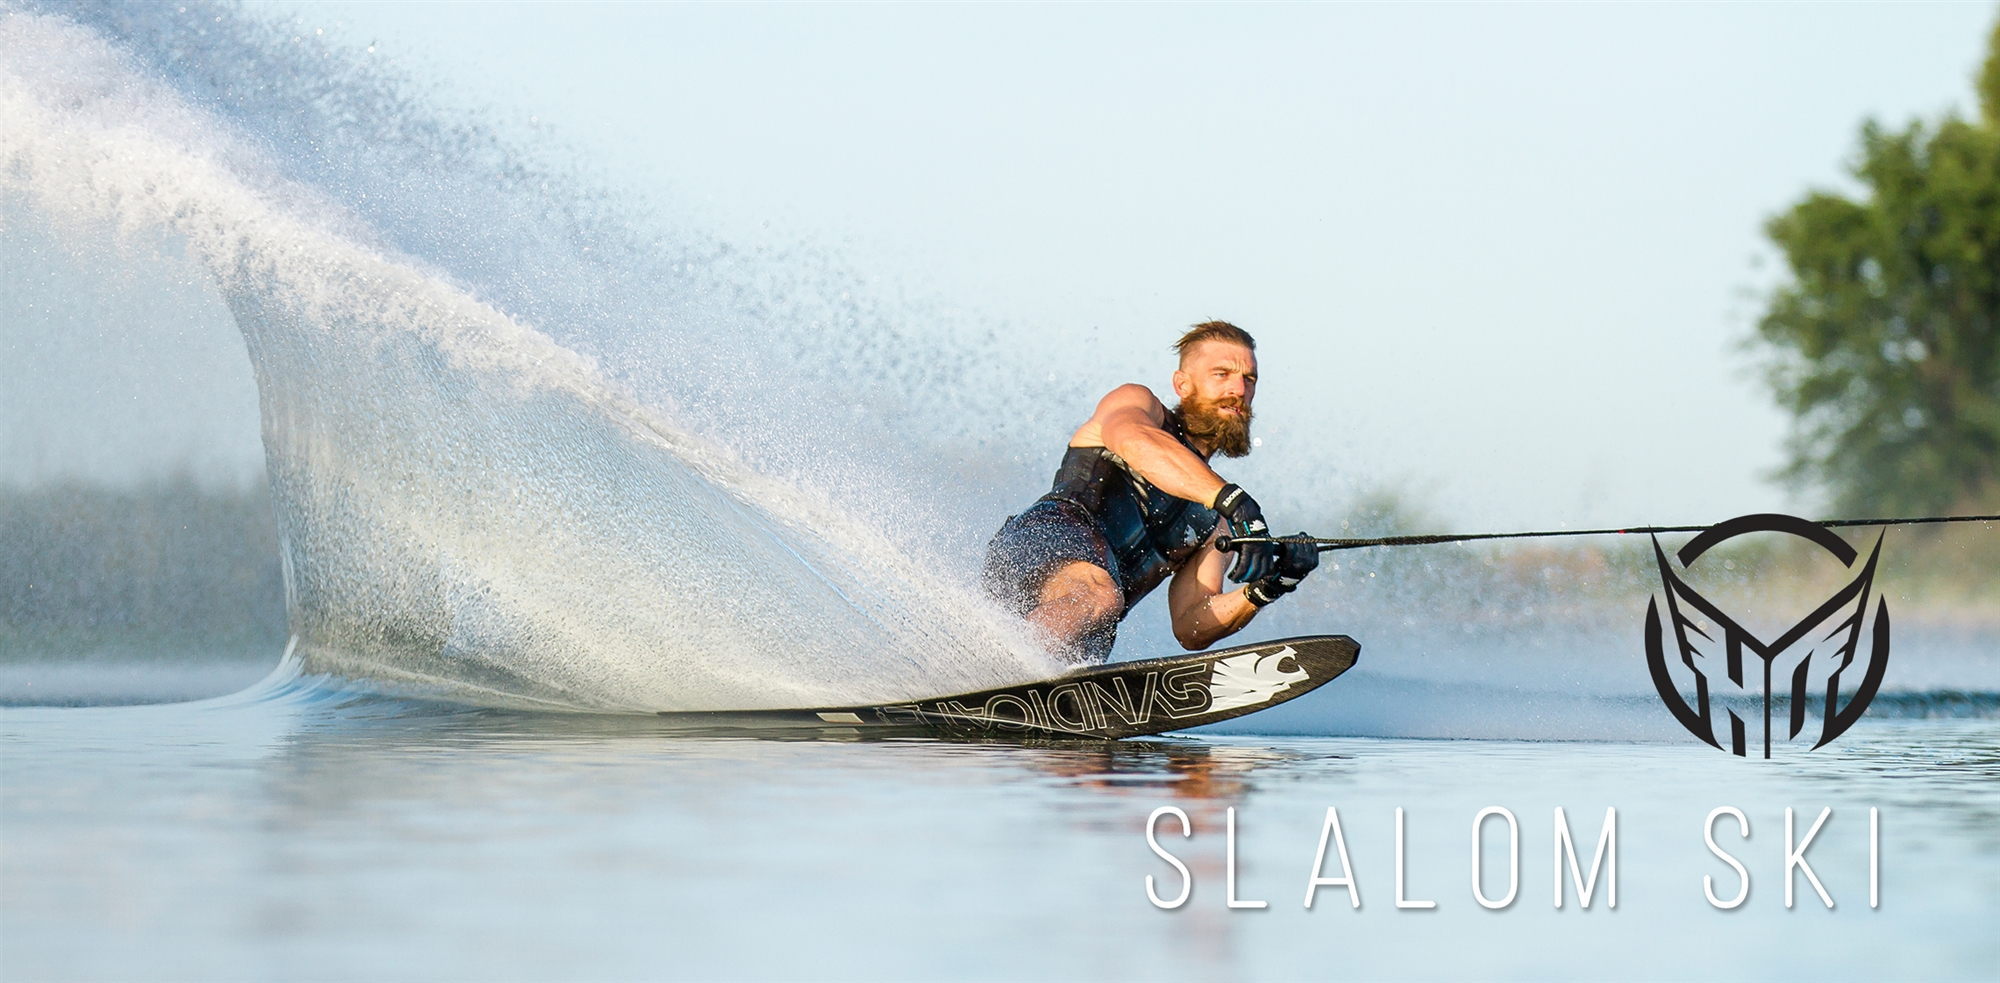 Kids Water Skis >> Ho Water Skis Ho Course Crossover And Freestyle Slalom Skis